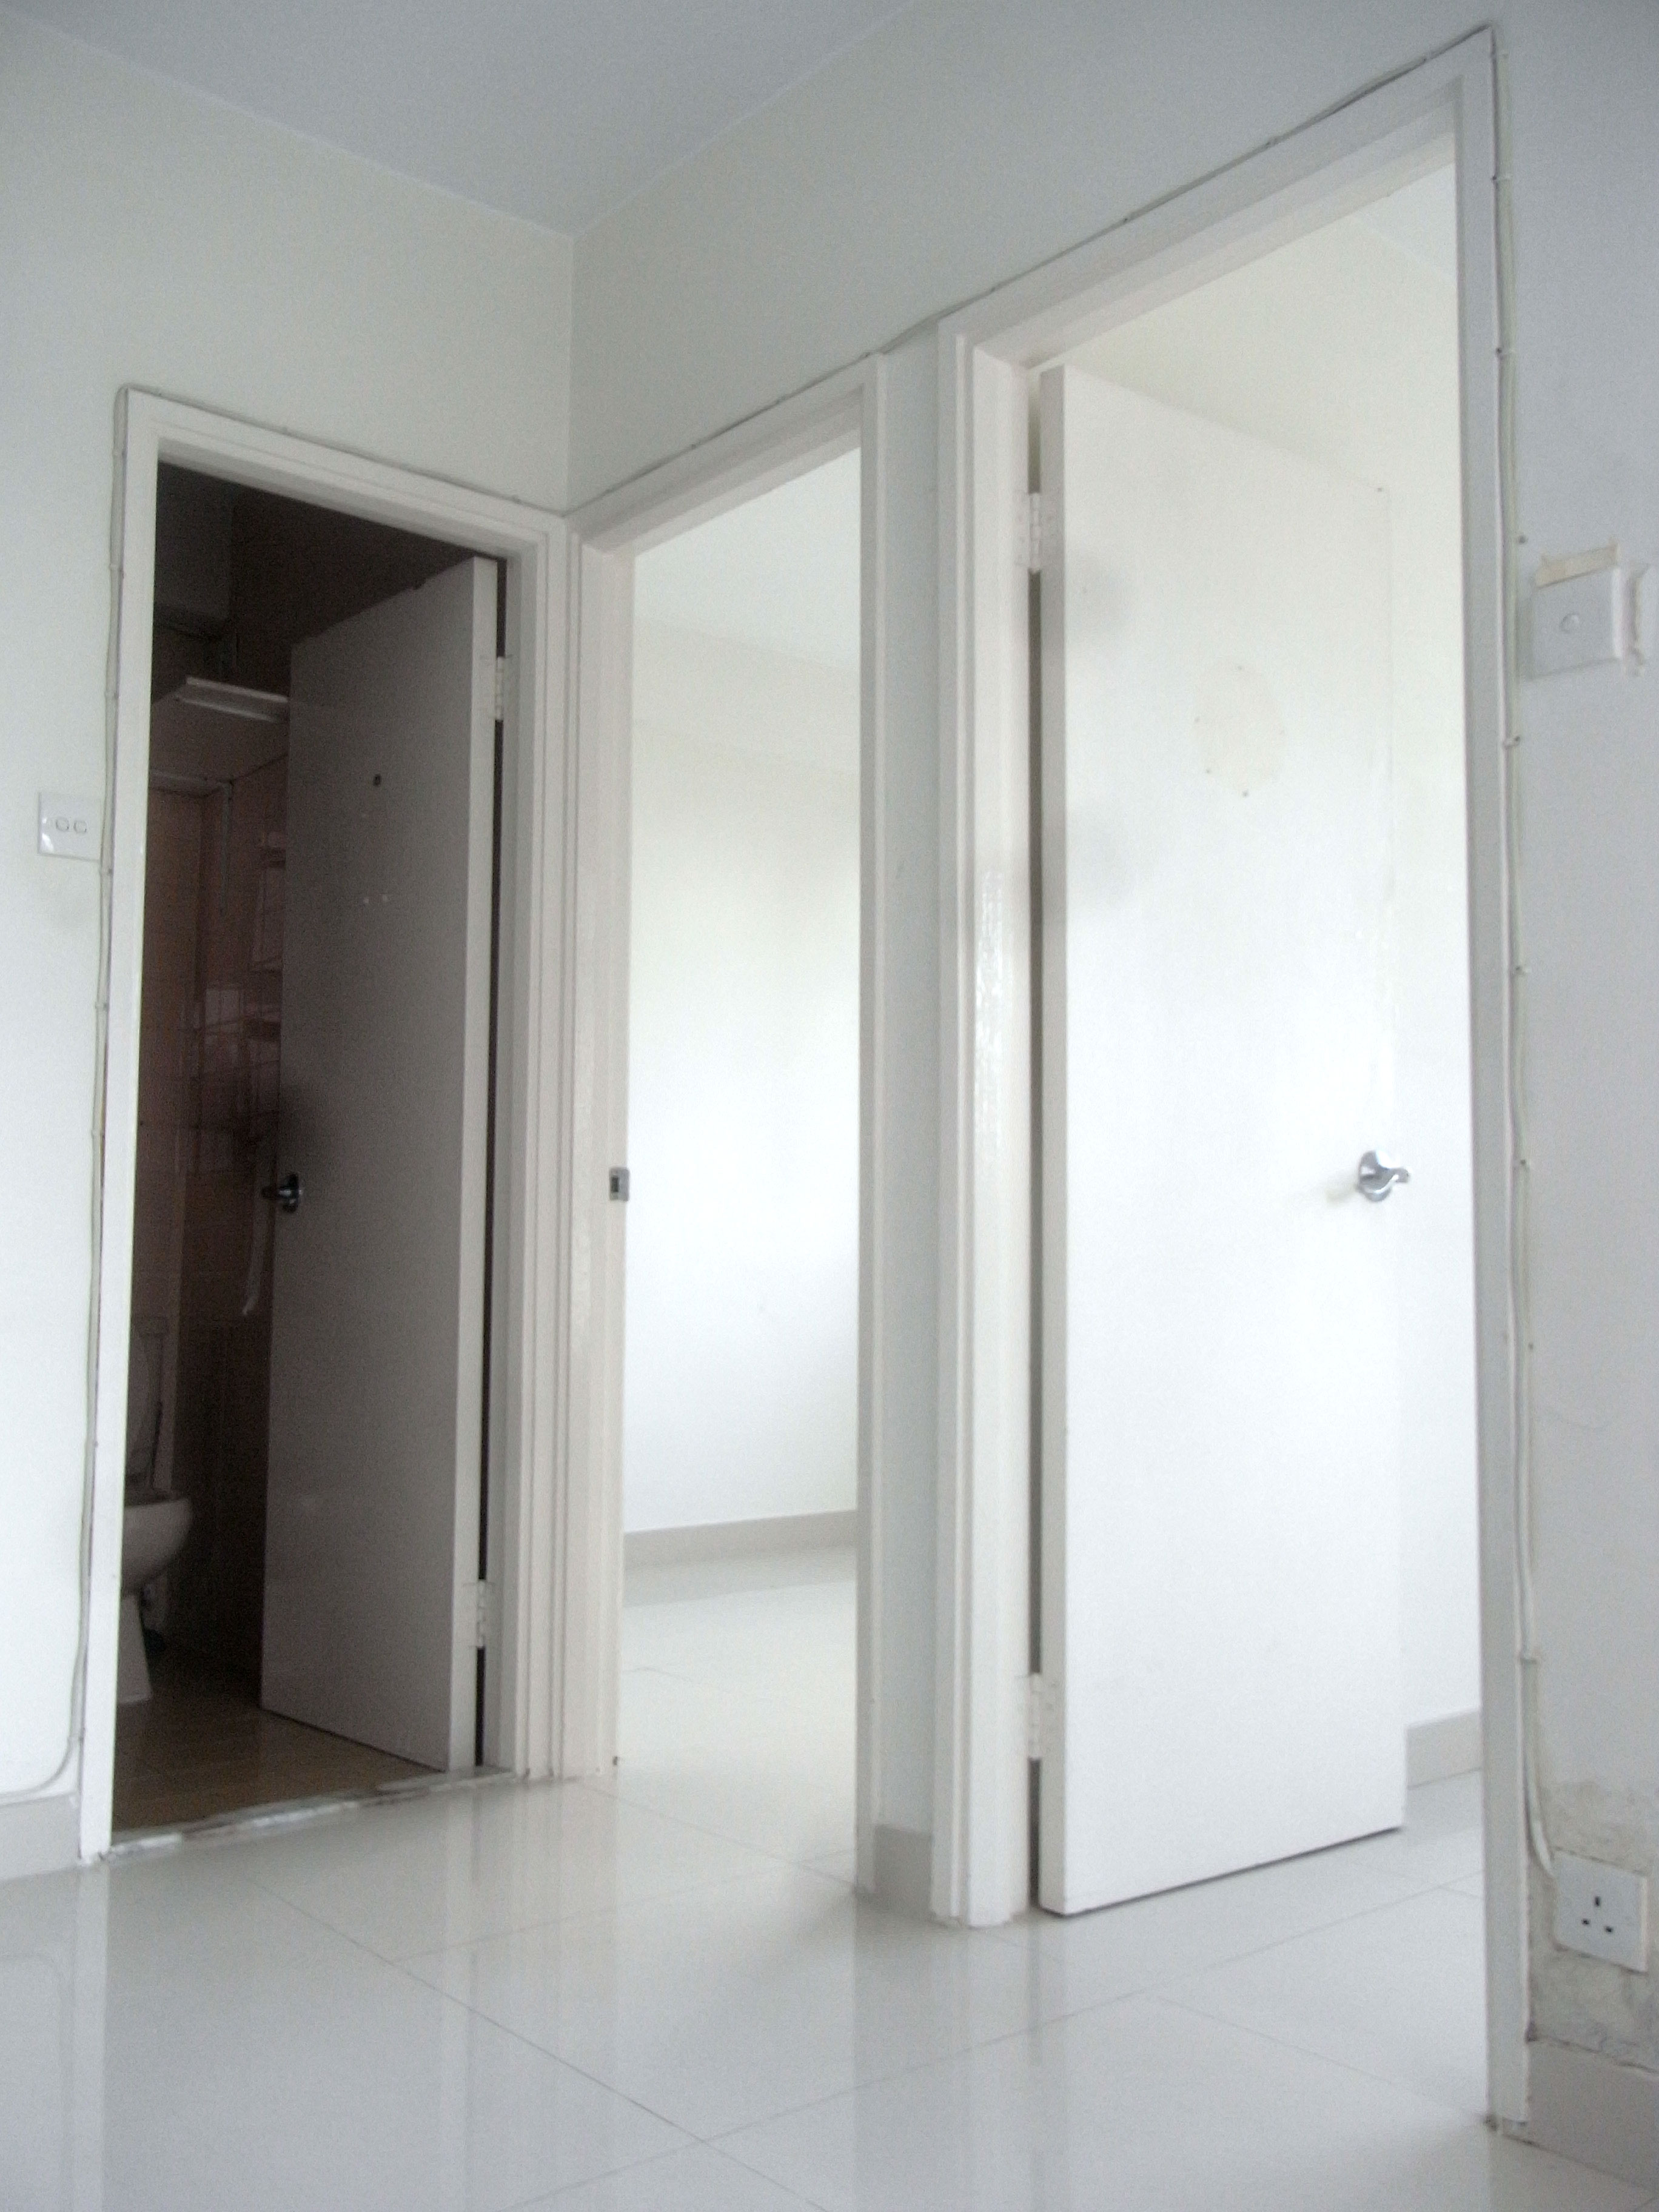 Images of bedroom doors good decorating ideas for Flat interior images